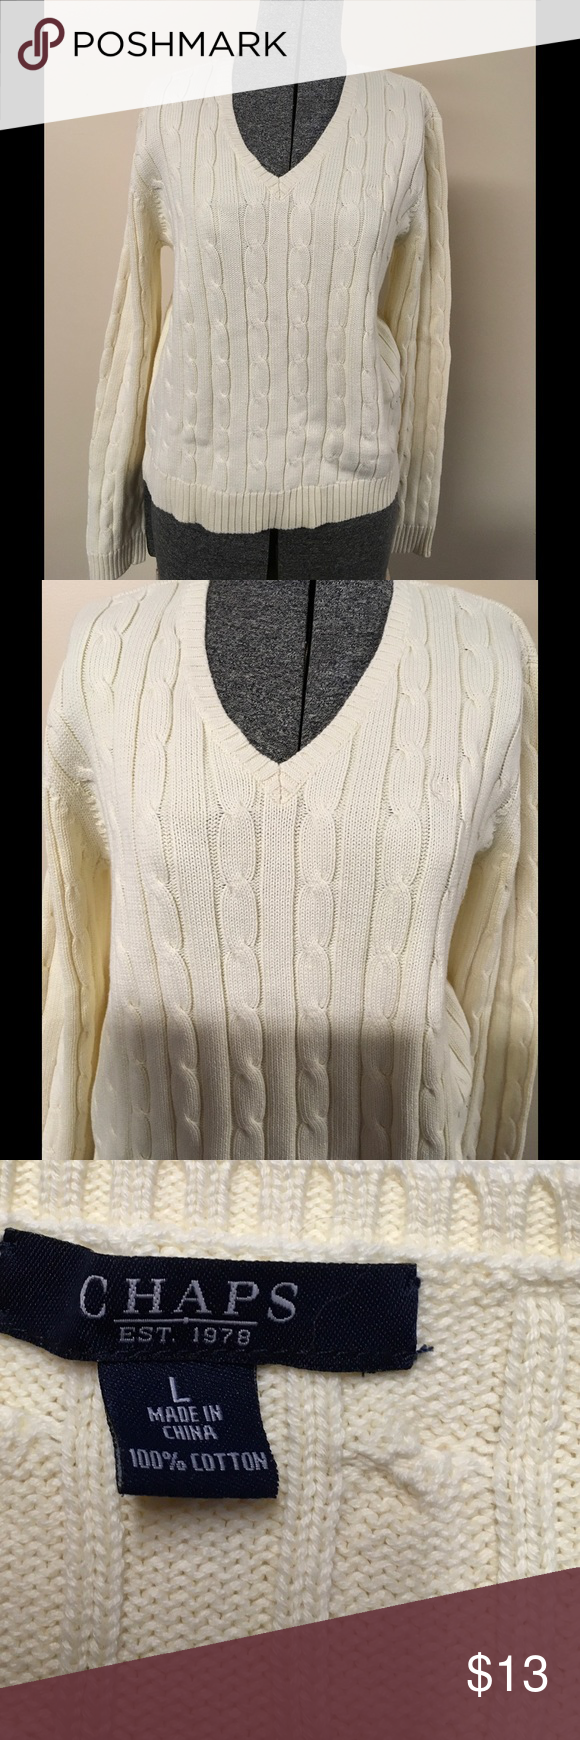 Chaps Cable Knit V-Neck Sweater Size Large | Cable knitting, Cable ...